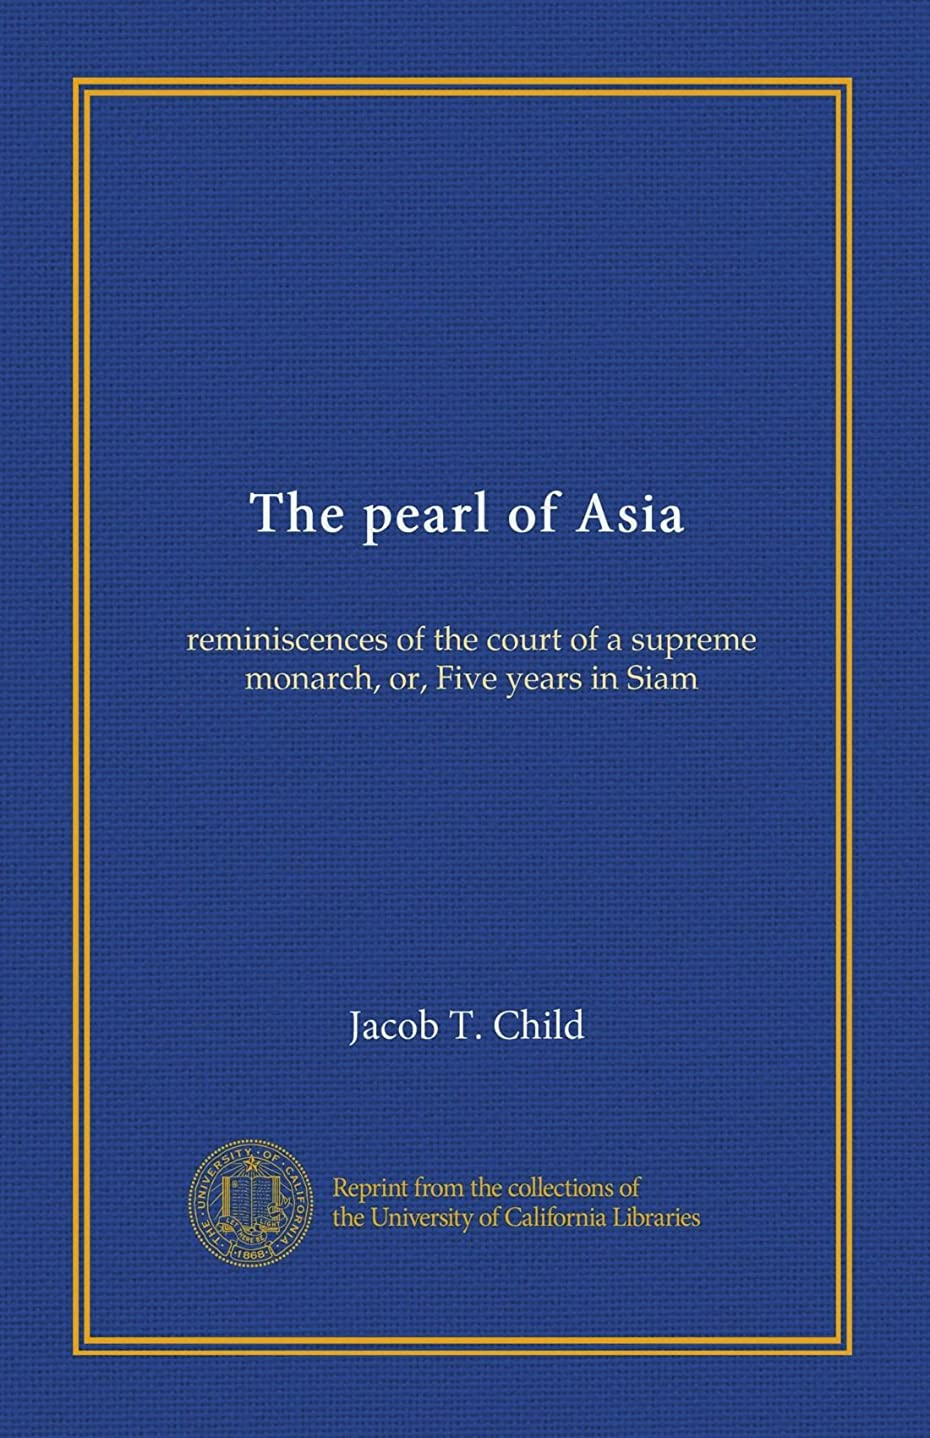 ハンサム素晴らしい市の花The pearl of Asia: reminiscences of the court of a supreme monarch, or, Five years in Siam